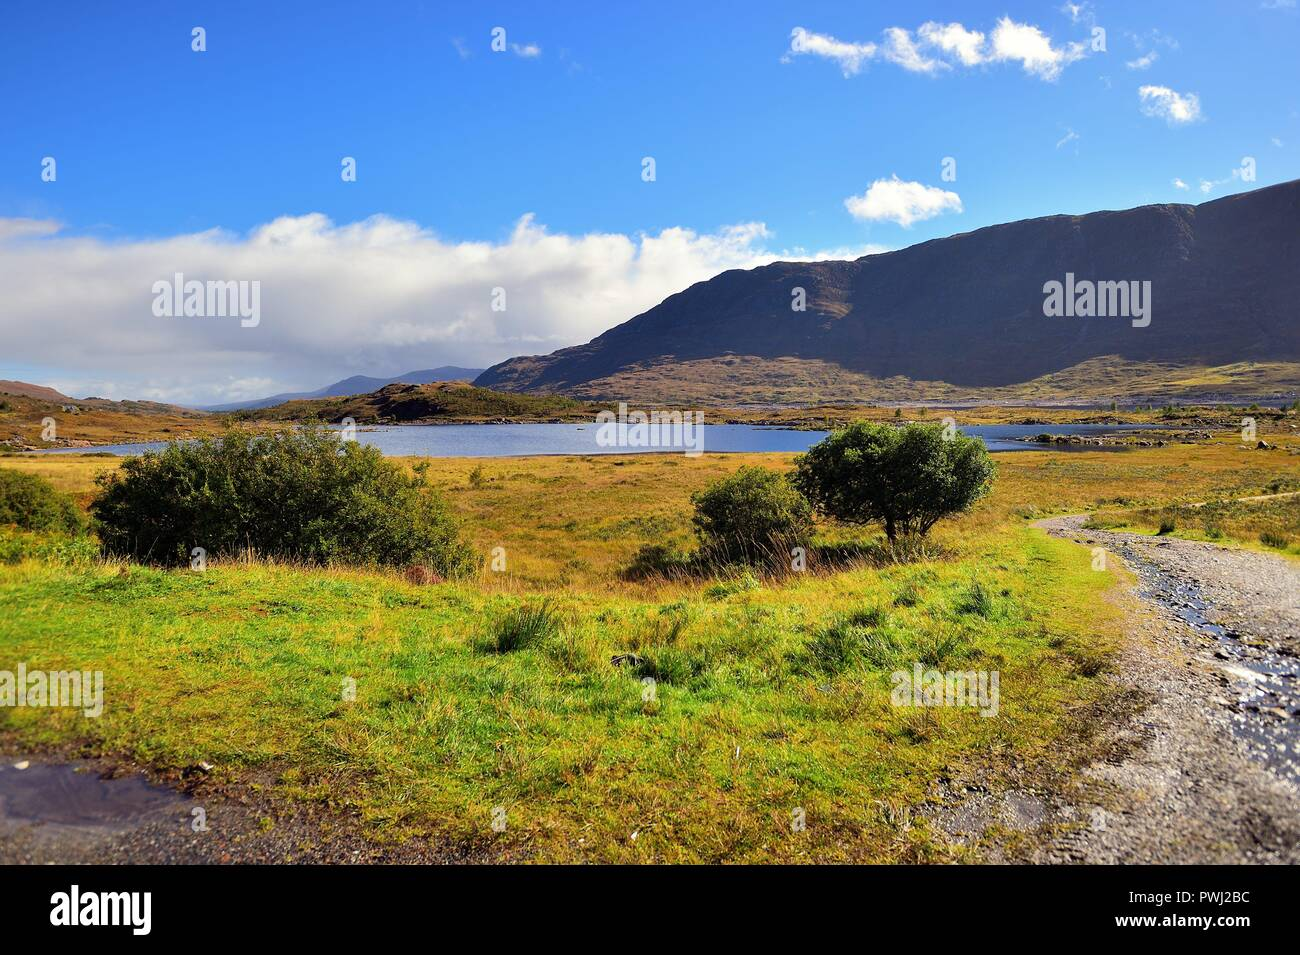 Bun Loyne, Highlands, Scotland, United Kingdom. The beauty of the Scottish Highlands is apparent in this early autumn scene near Loch Cluaniee. - Stock Image